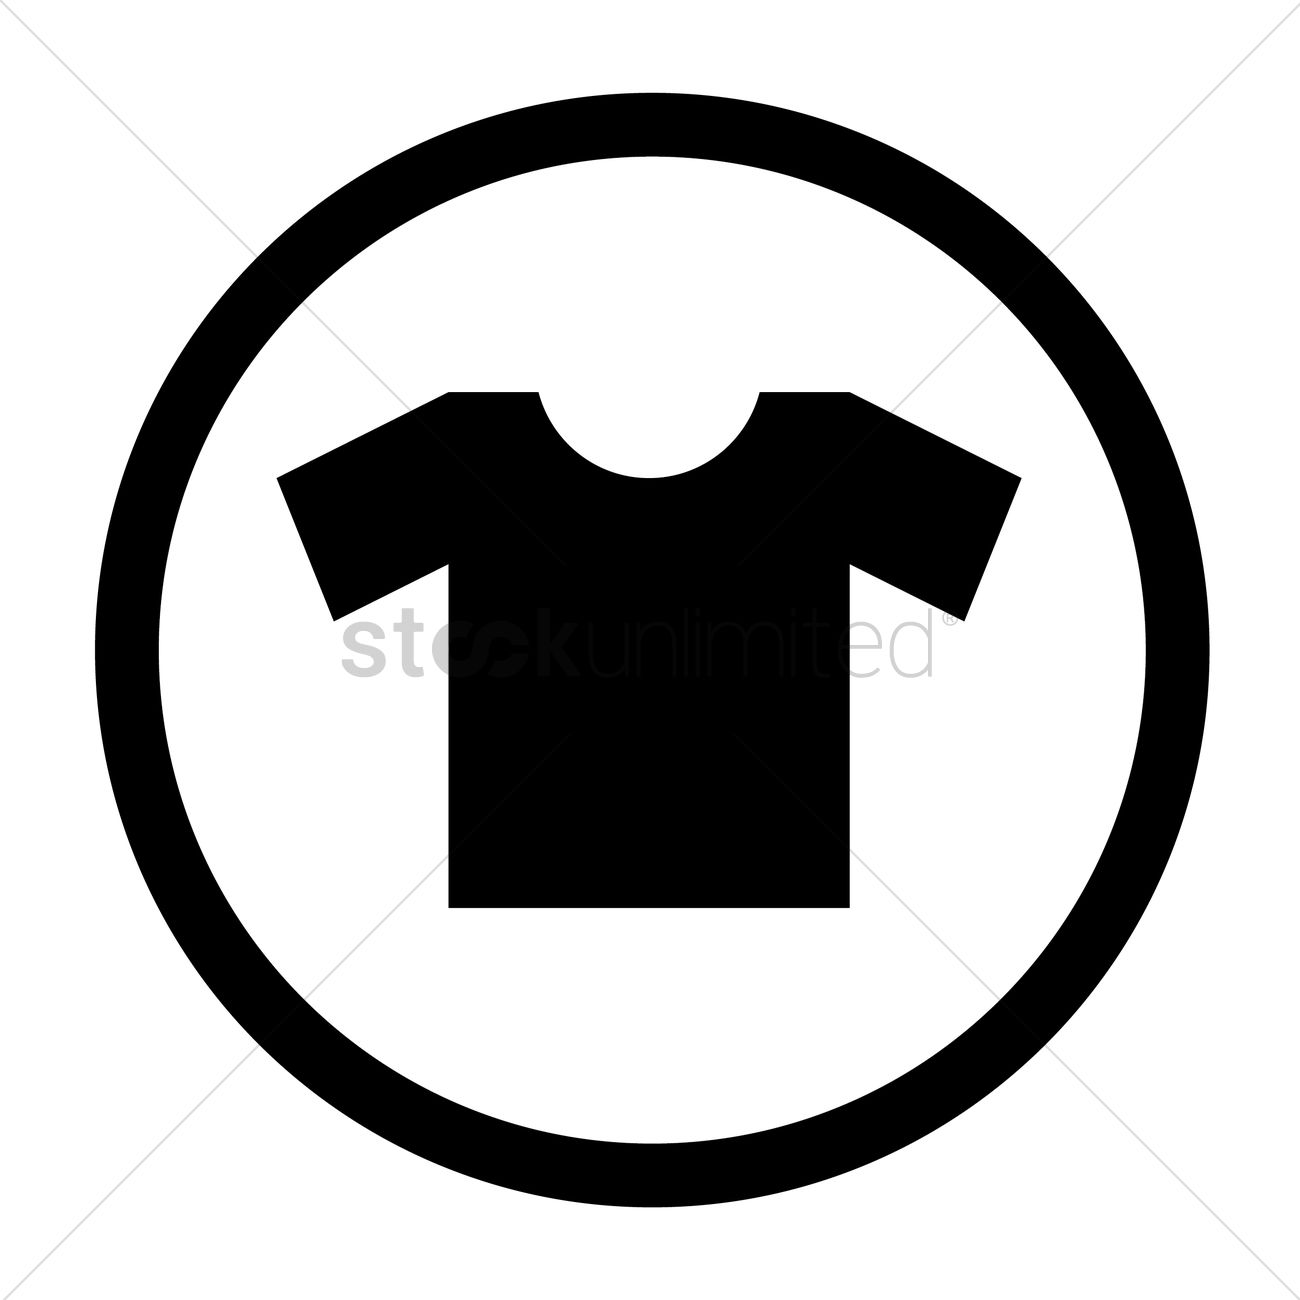 t shirt icon vector image 1648798 stockunlimited t shirt icon vector image 1648798